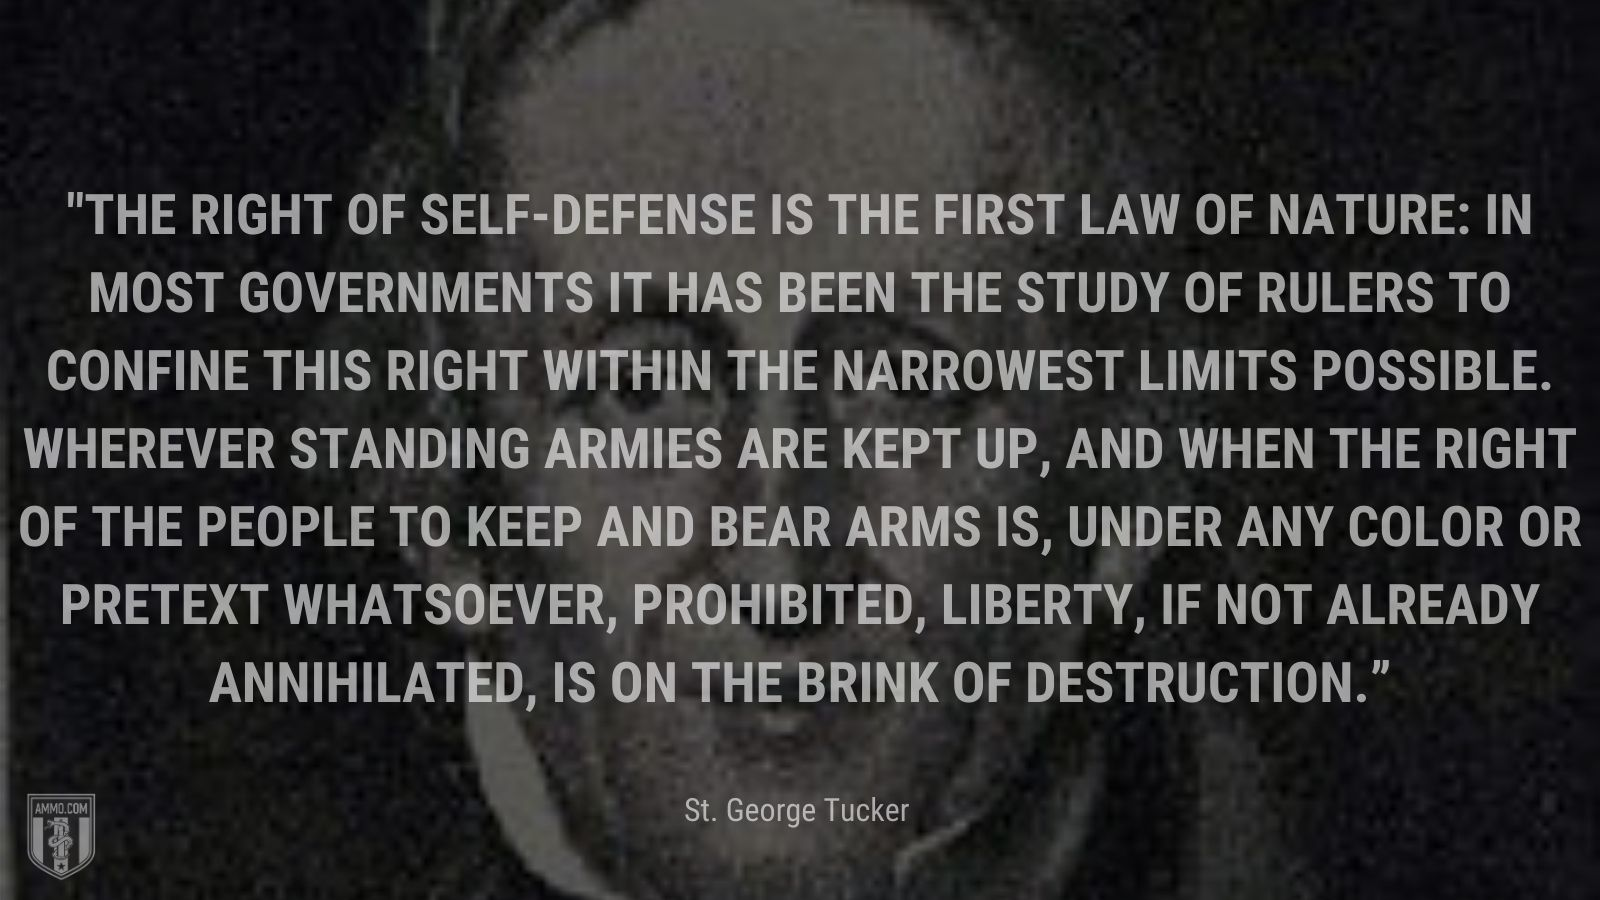 """""""The right of self-defense is the first law of nature: in most governments it has been the study of rulers to confine this right within the narrowest limits possible. Wherever standing armies are kept up, and when the right of the people to keep and bear arms is, under any color or pretext whatsoever, prohibited, liberty, if not already annihilated, is on the brink of destruction."""" - St. George Tucker"""